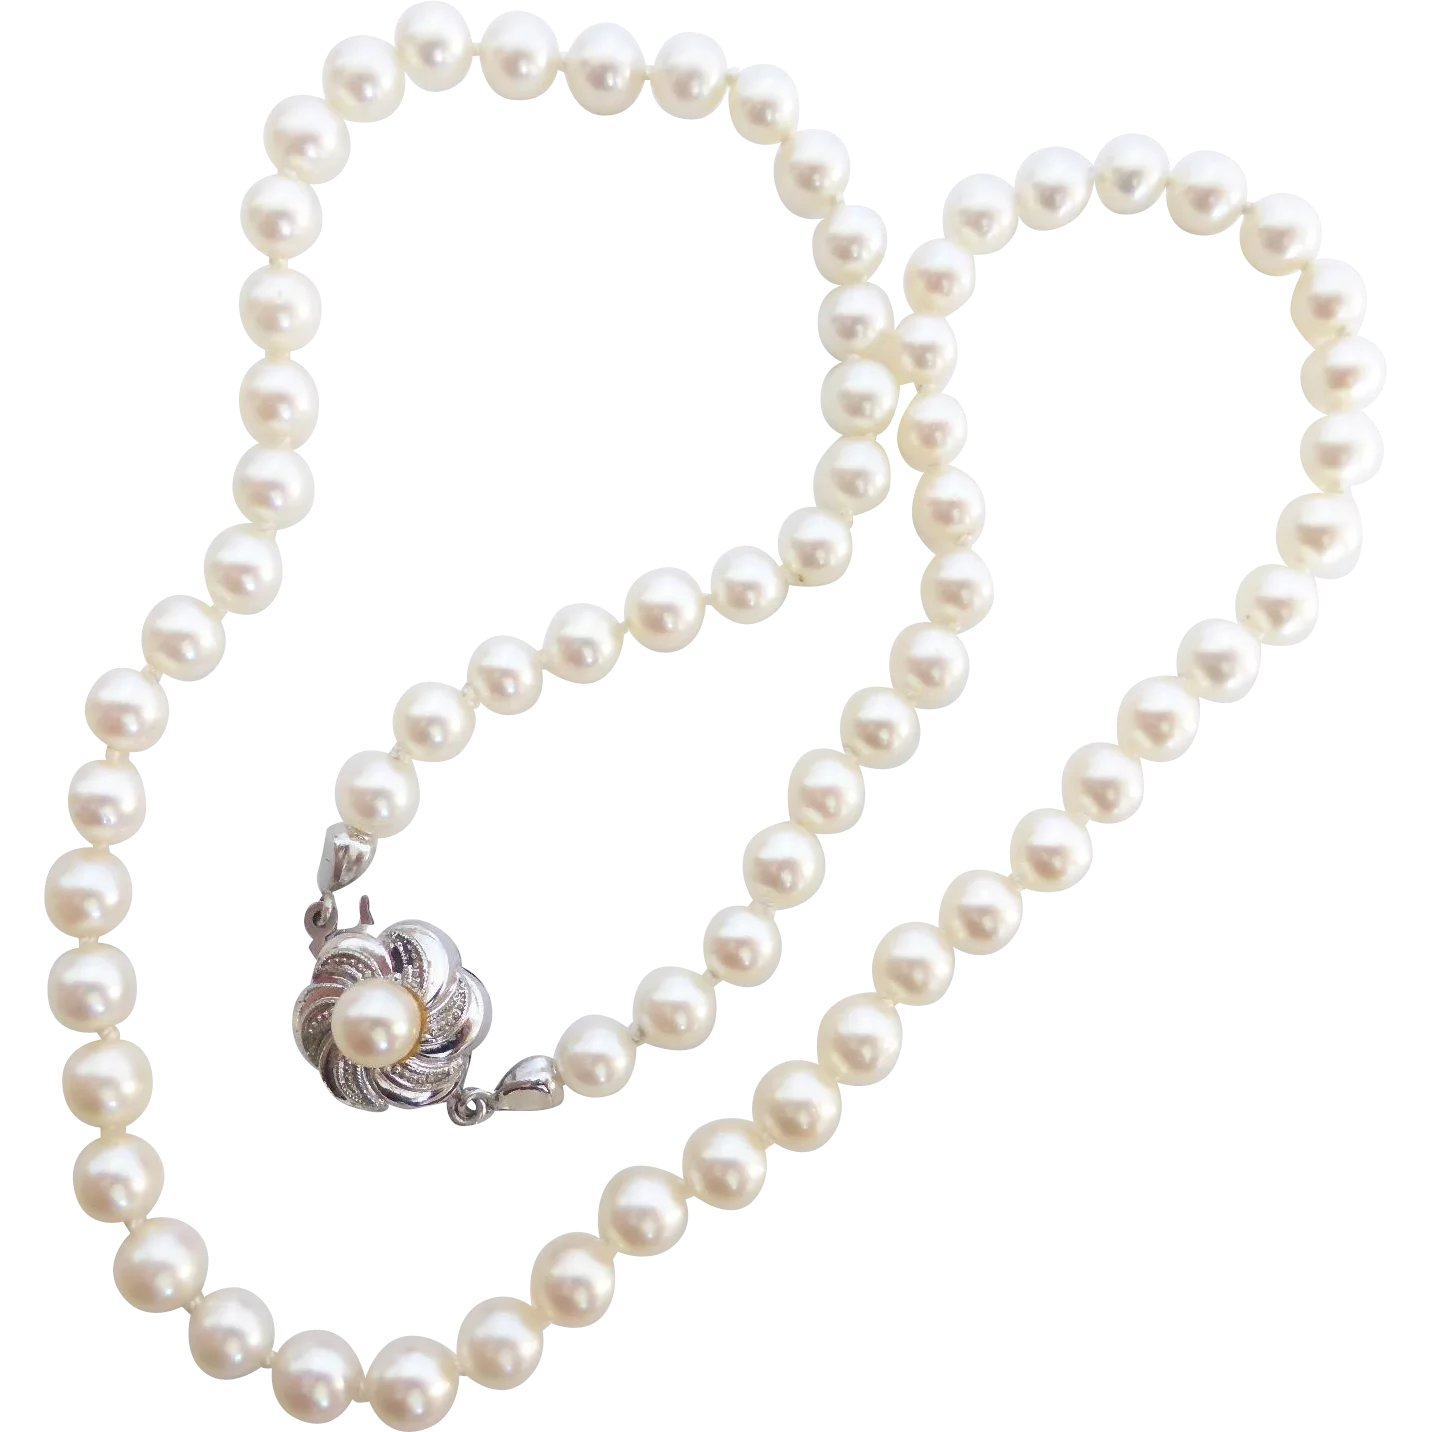 jewelry product mikimoto necklace fine broome pendant pearl pav